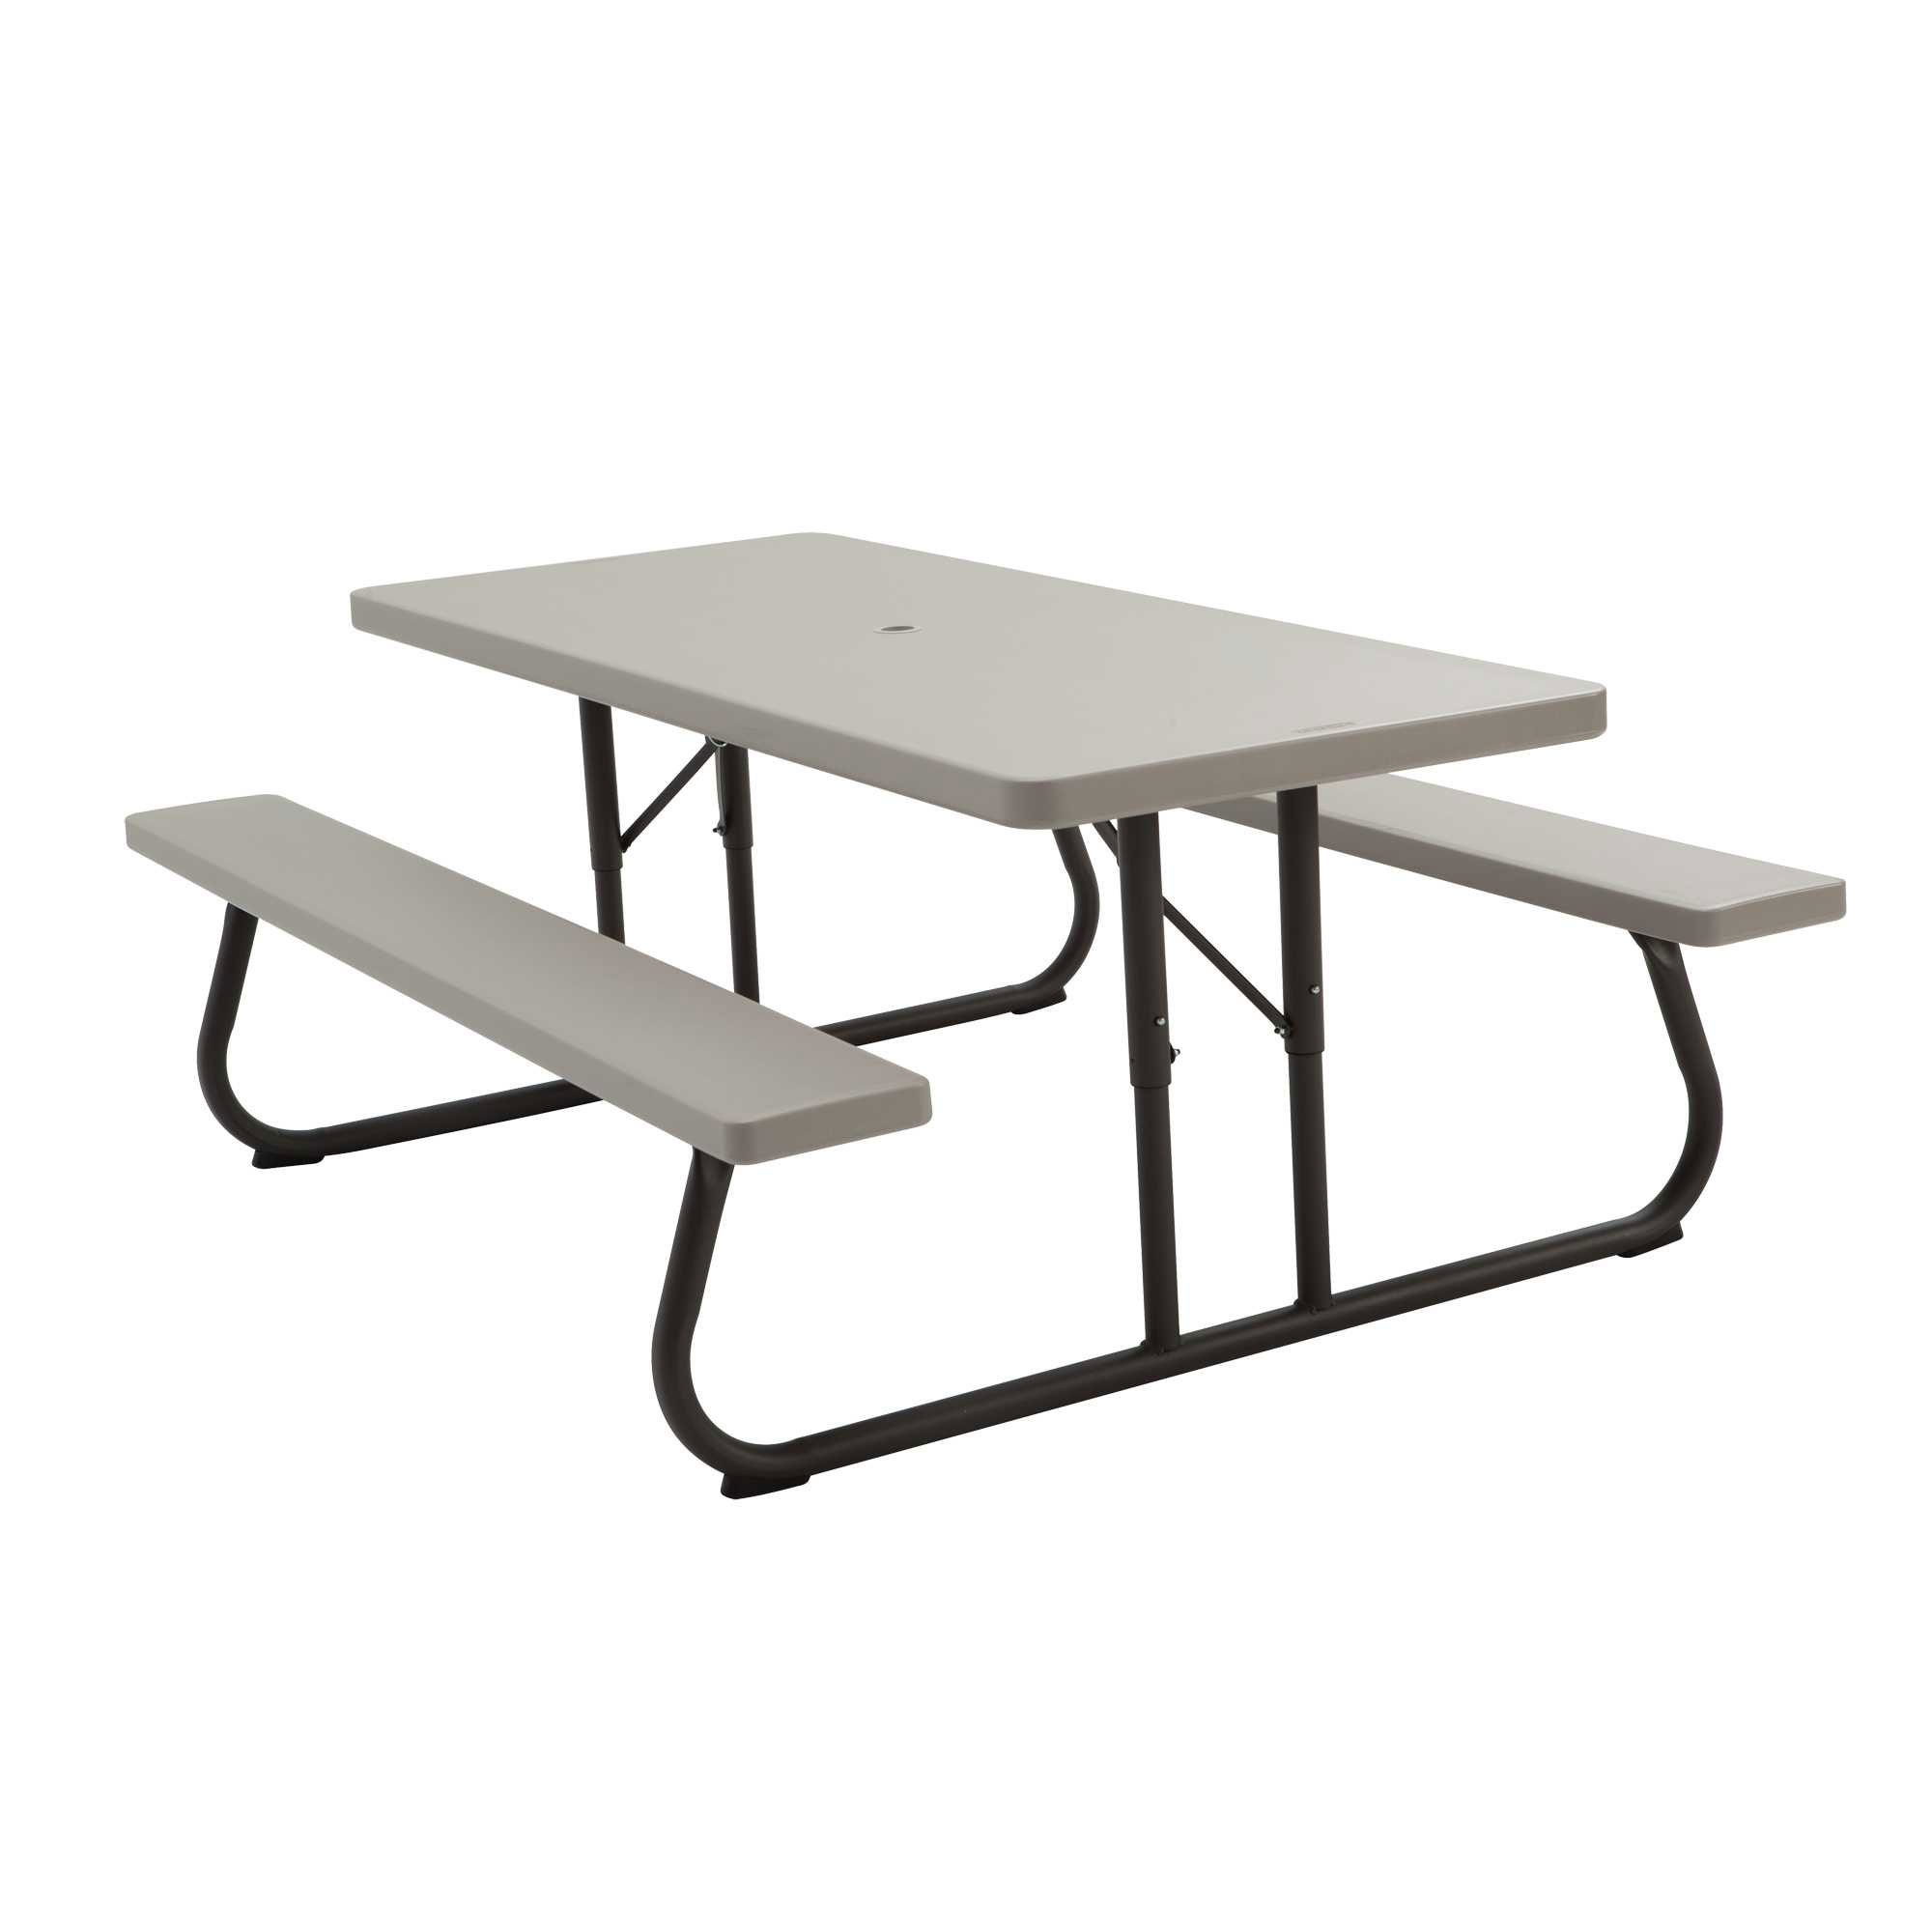 furniture picnic frame cool down foldable combo lunch foot wood tags round lifetime and most table plans benches with fold turns into bench aluminium folding that small park